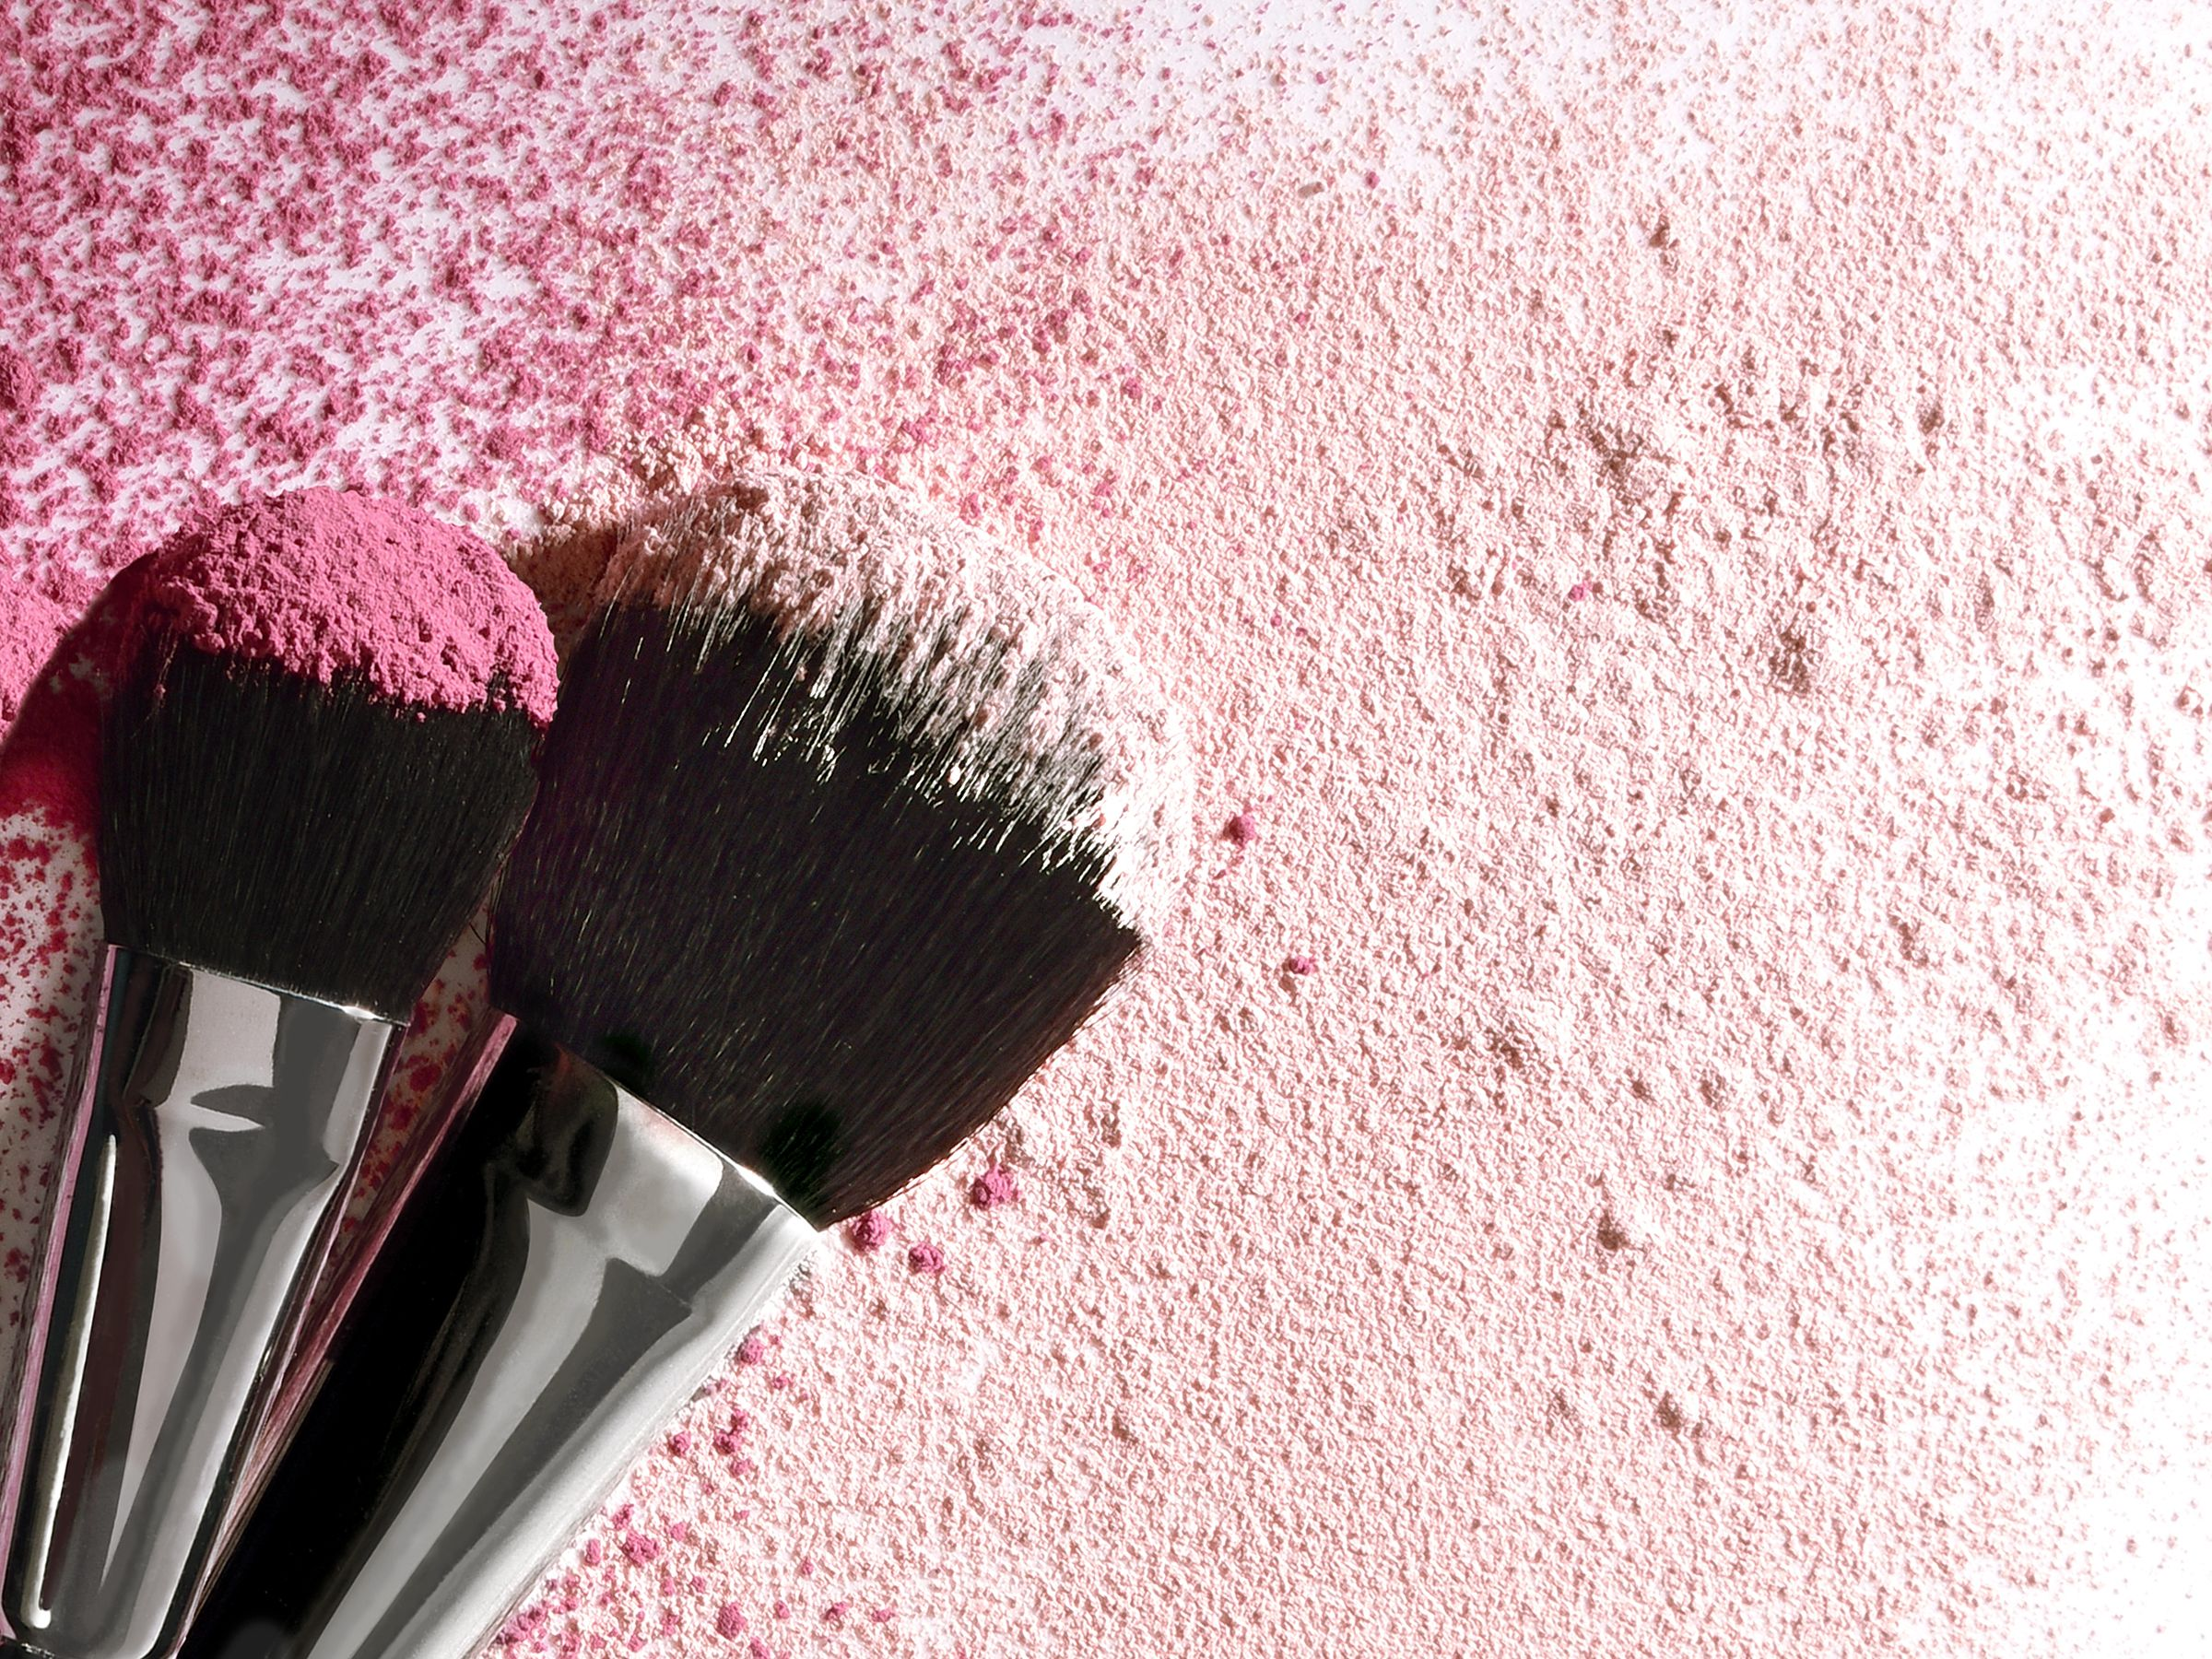 The right tools make all the difference! Our Makeup